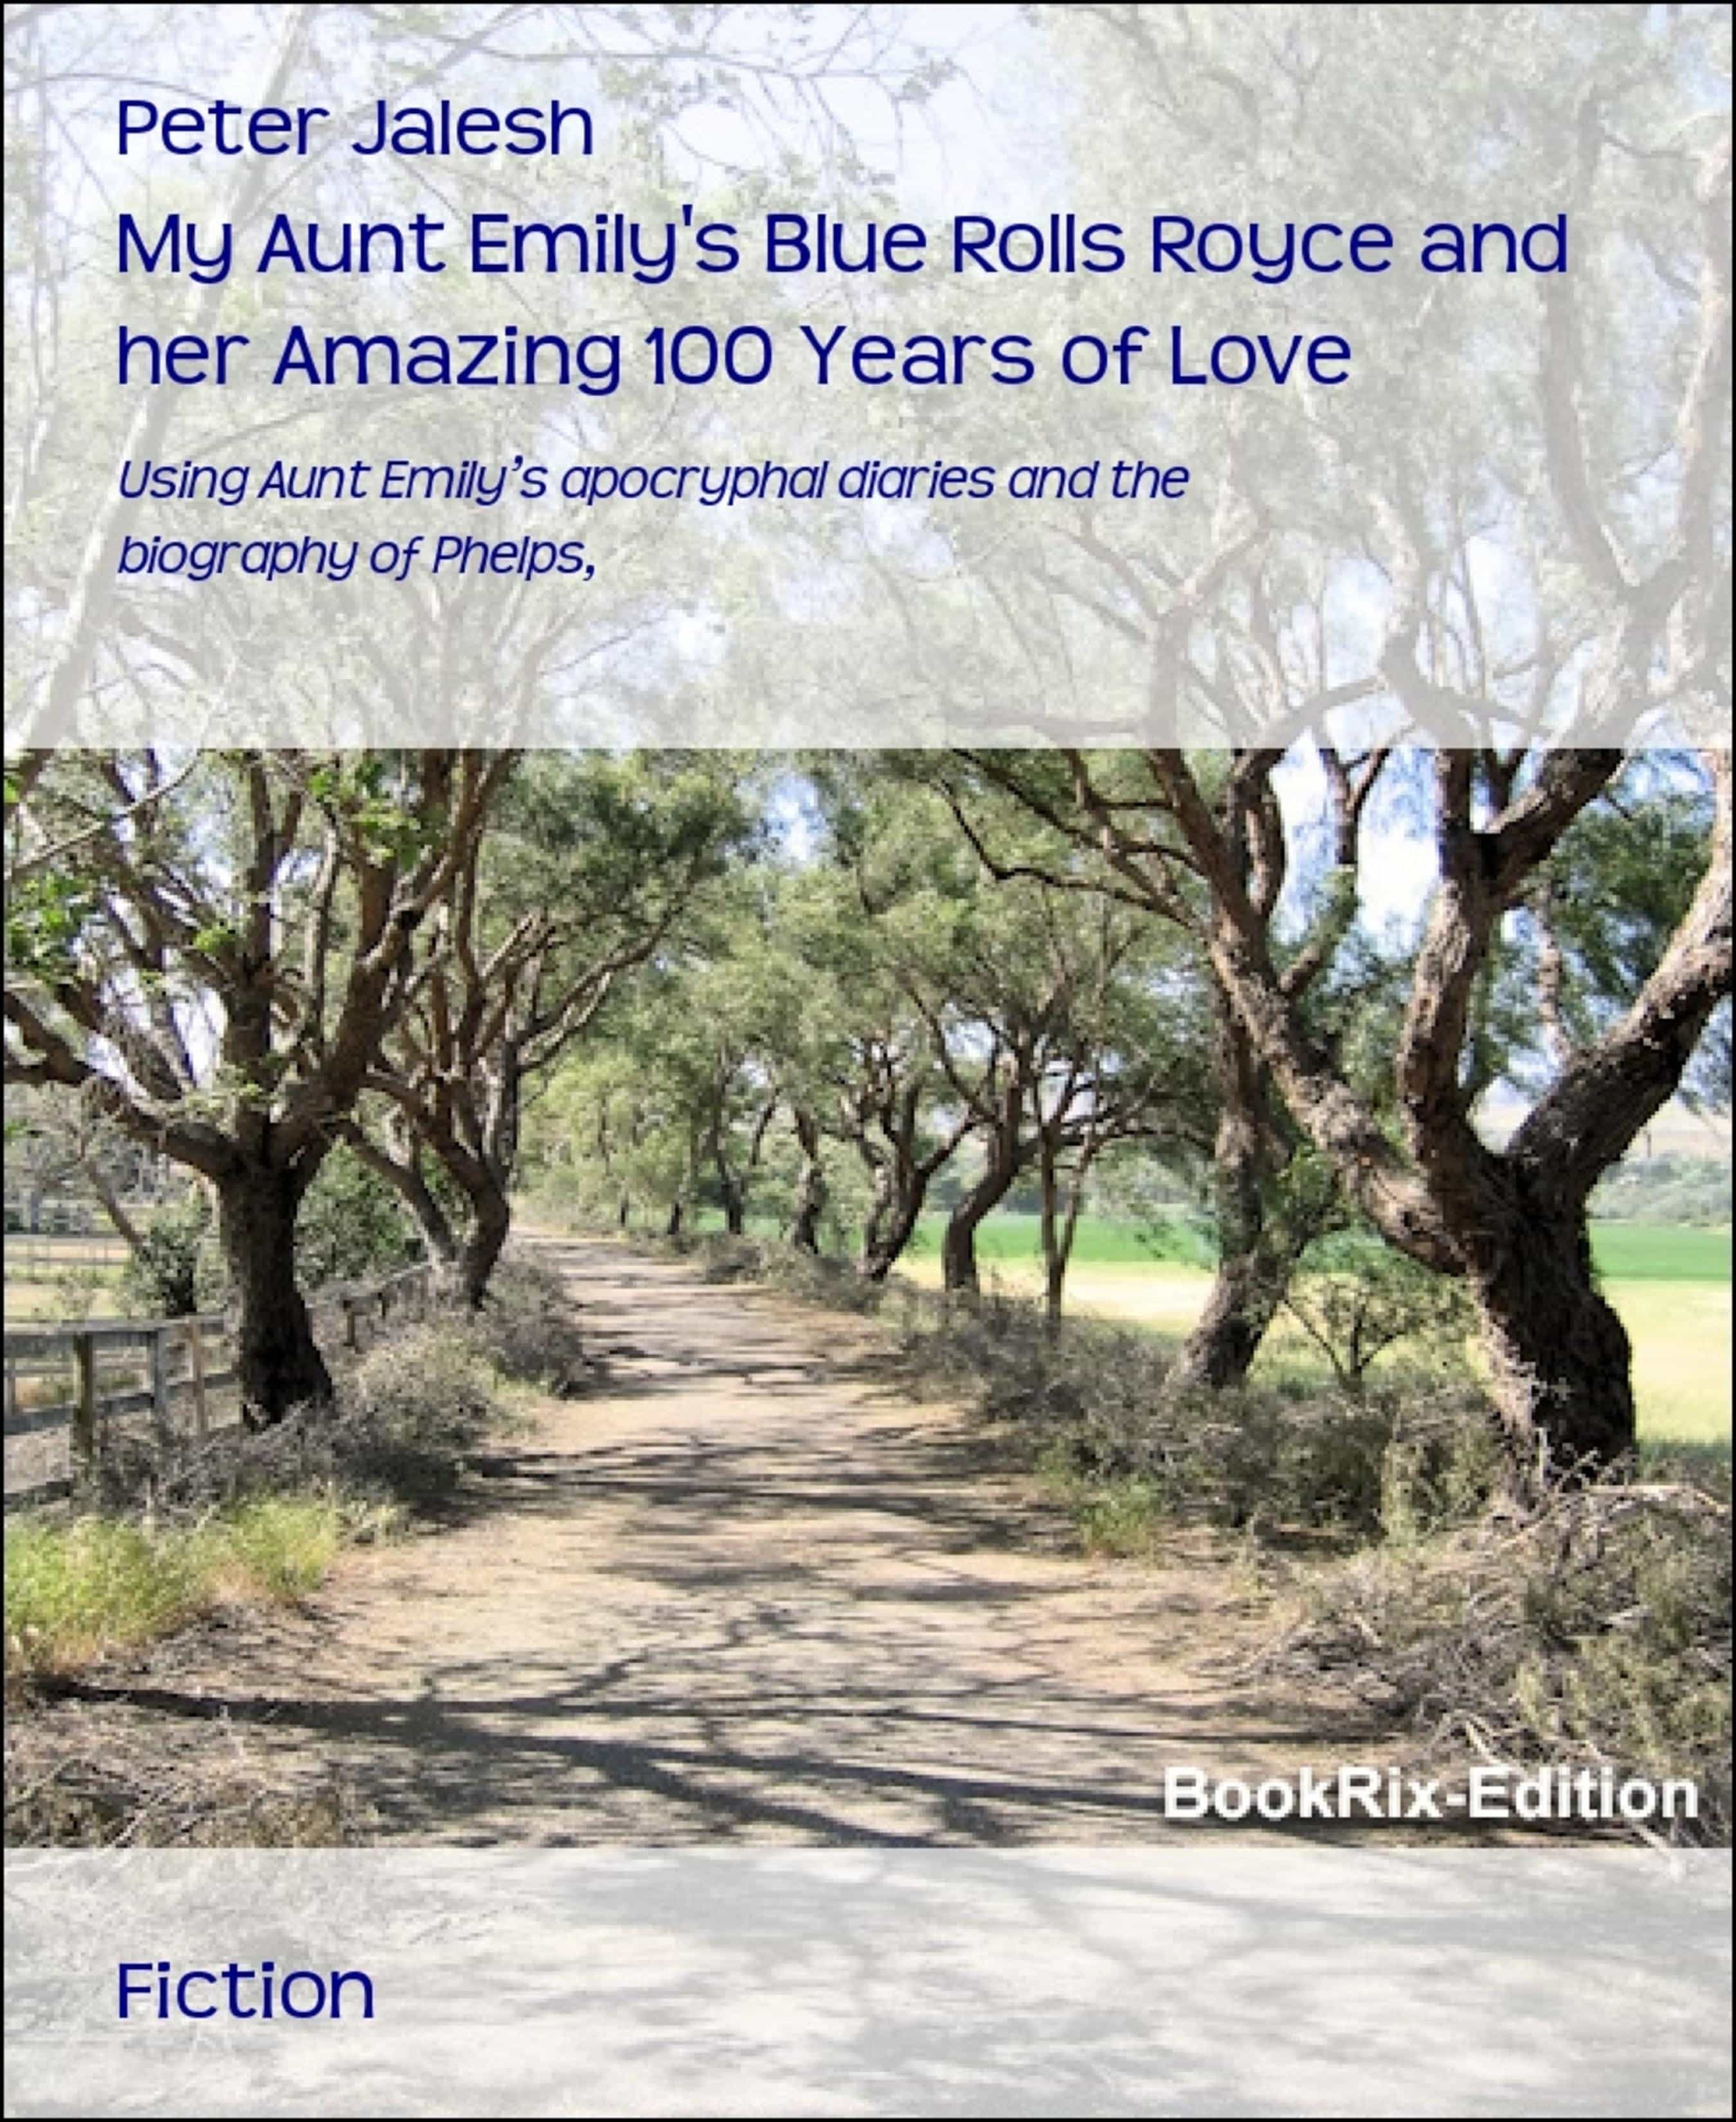 MY AUNT EMILY'S BLUE ROLLS ROYCE AND HER AMAZING 100 YEARS OF LOVE